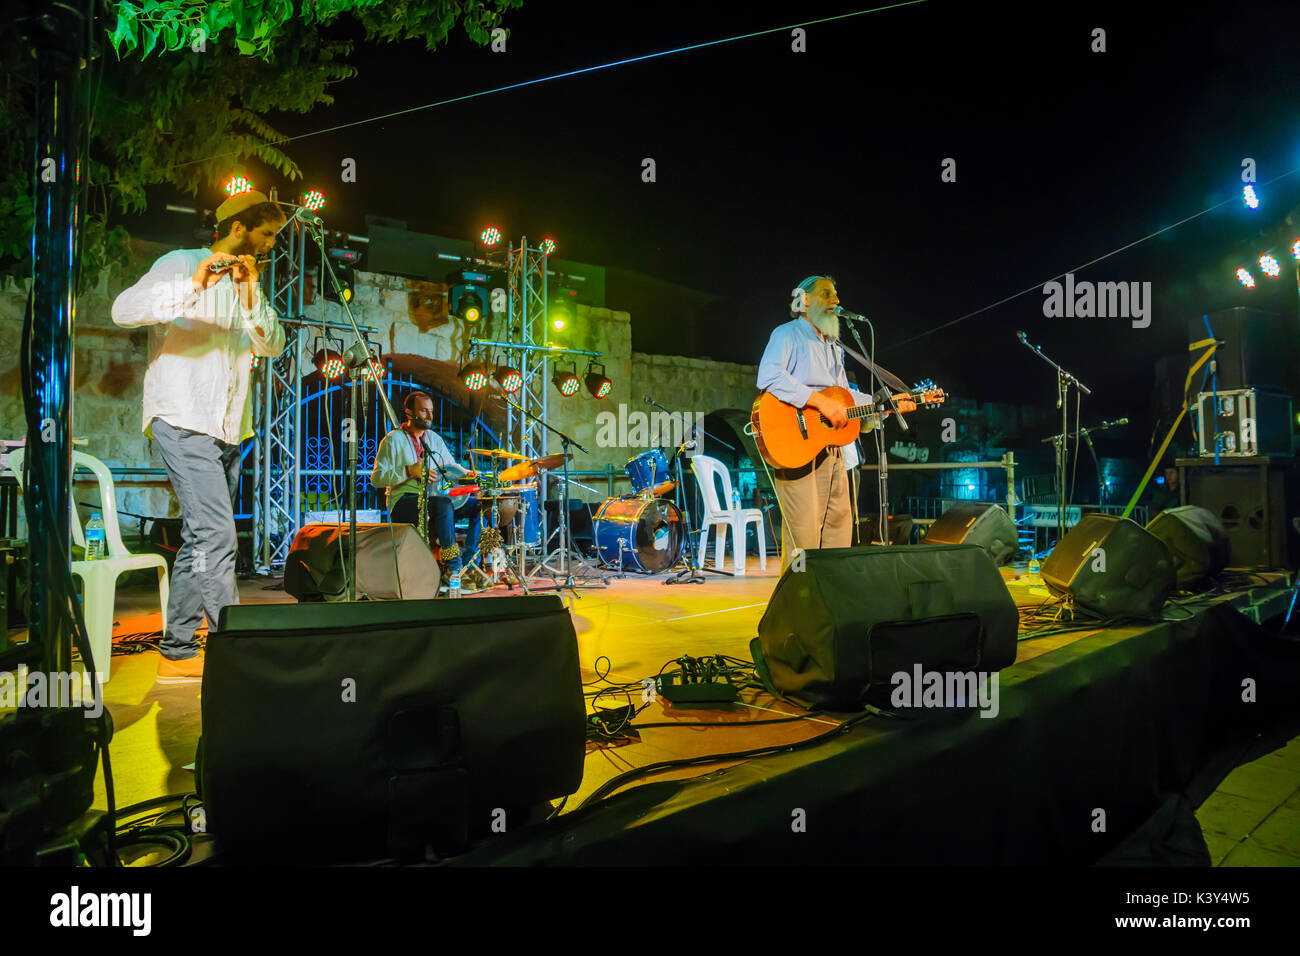 SAFED, ISRAEL - AUGUST 23, 2017: Group of musicians (Yehuda Katz) play at the Klezmer Festival in Safed (Tzfat), Stock Photo